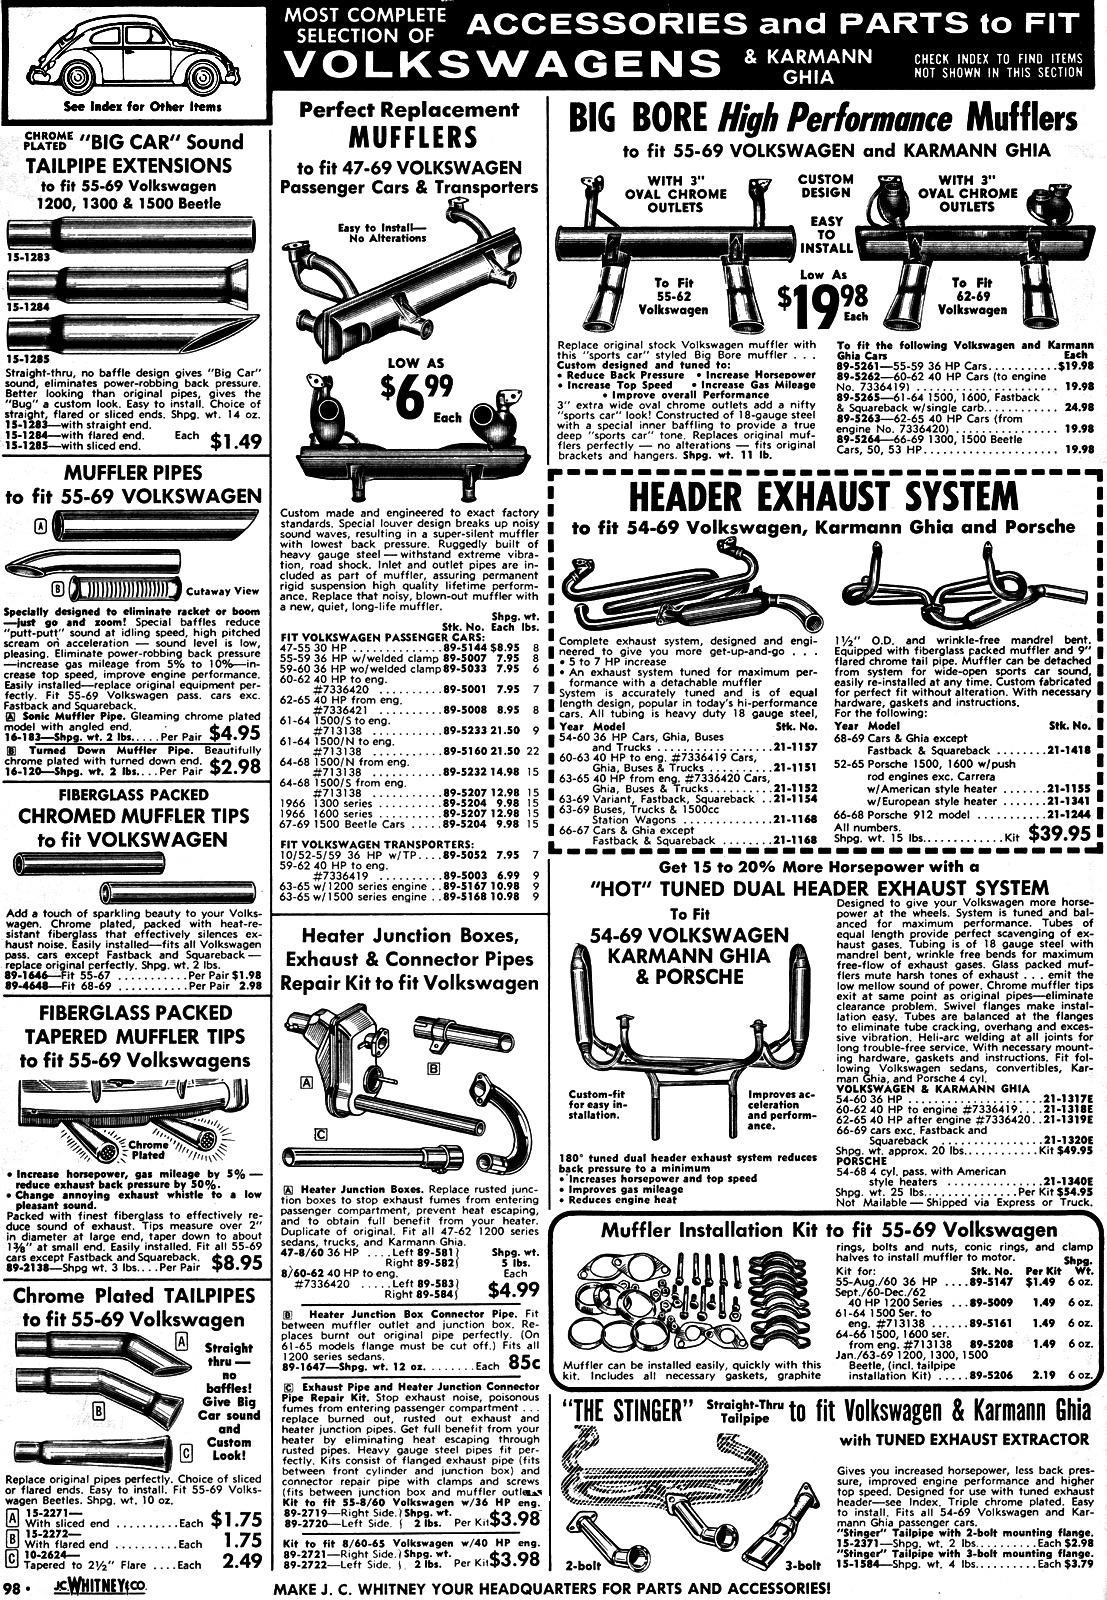 1969 J.C. Whitney Catalog - VW sections pages 90-98